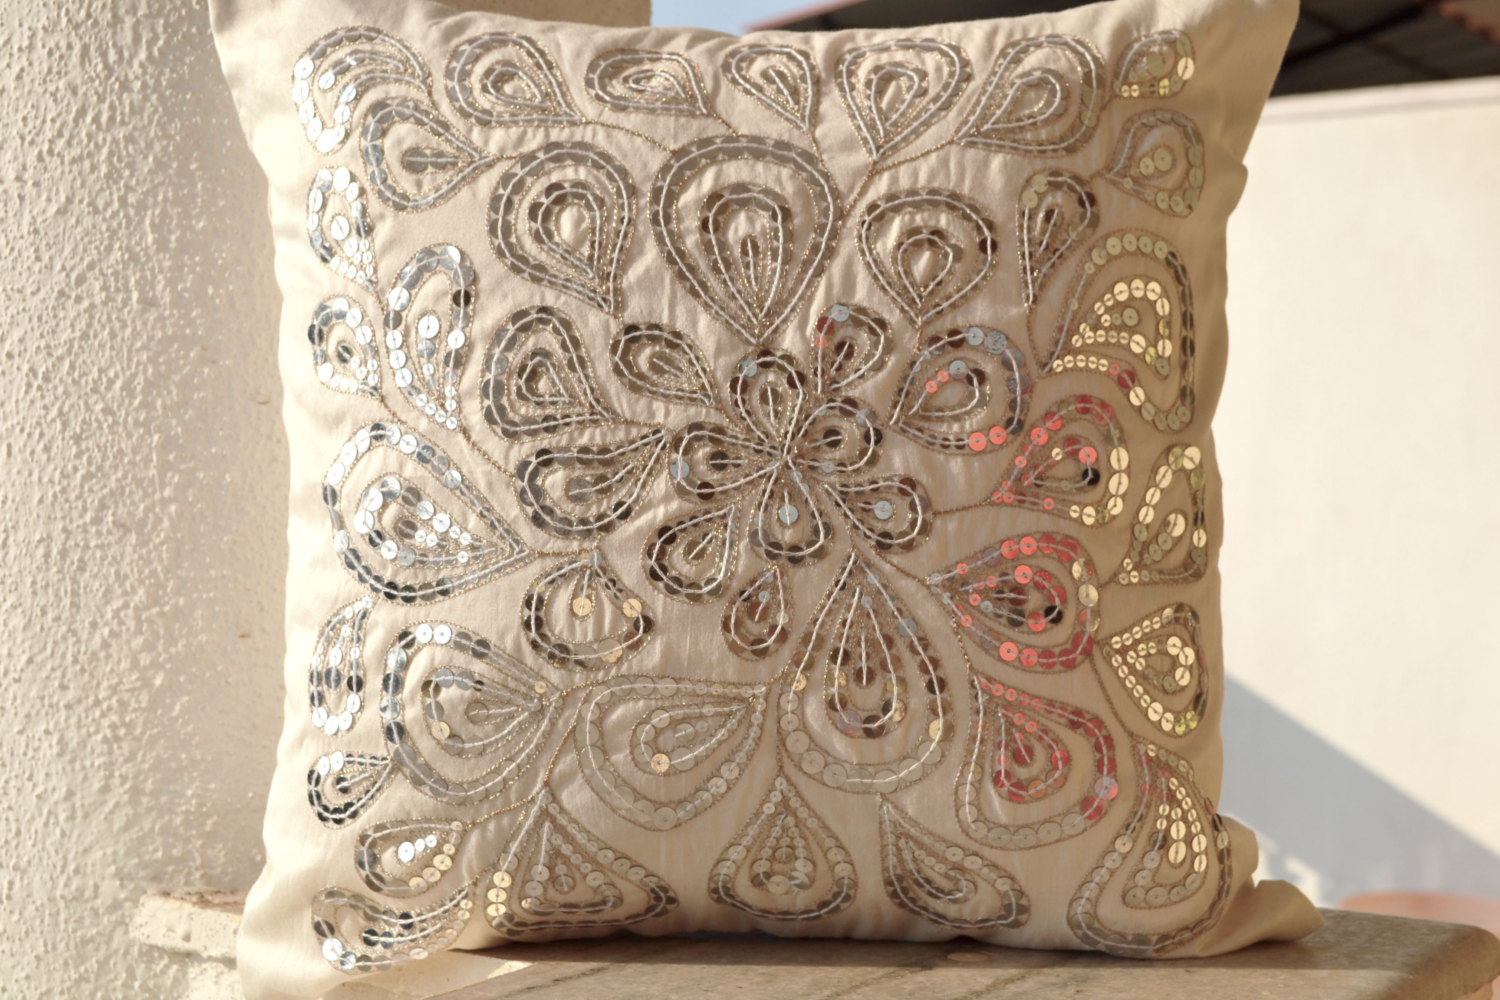 Couch Pillows. Best 25 Diy Pillow Covers Ideas On Pinterest Pillow Covers Sewing Pillows And ...